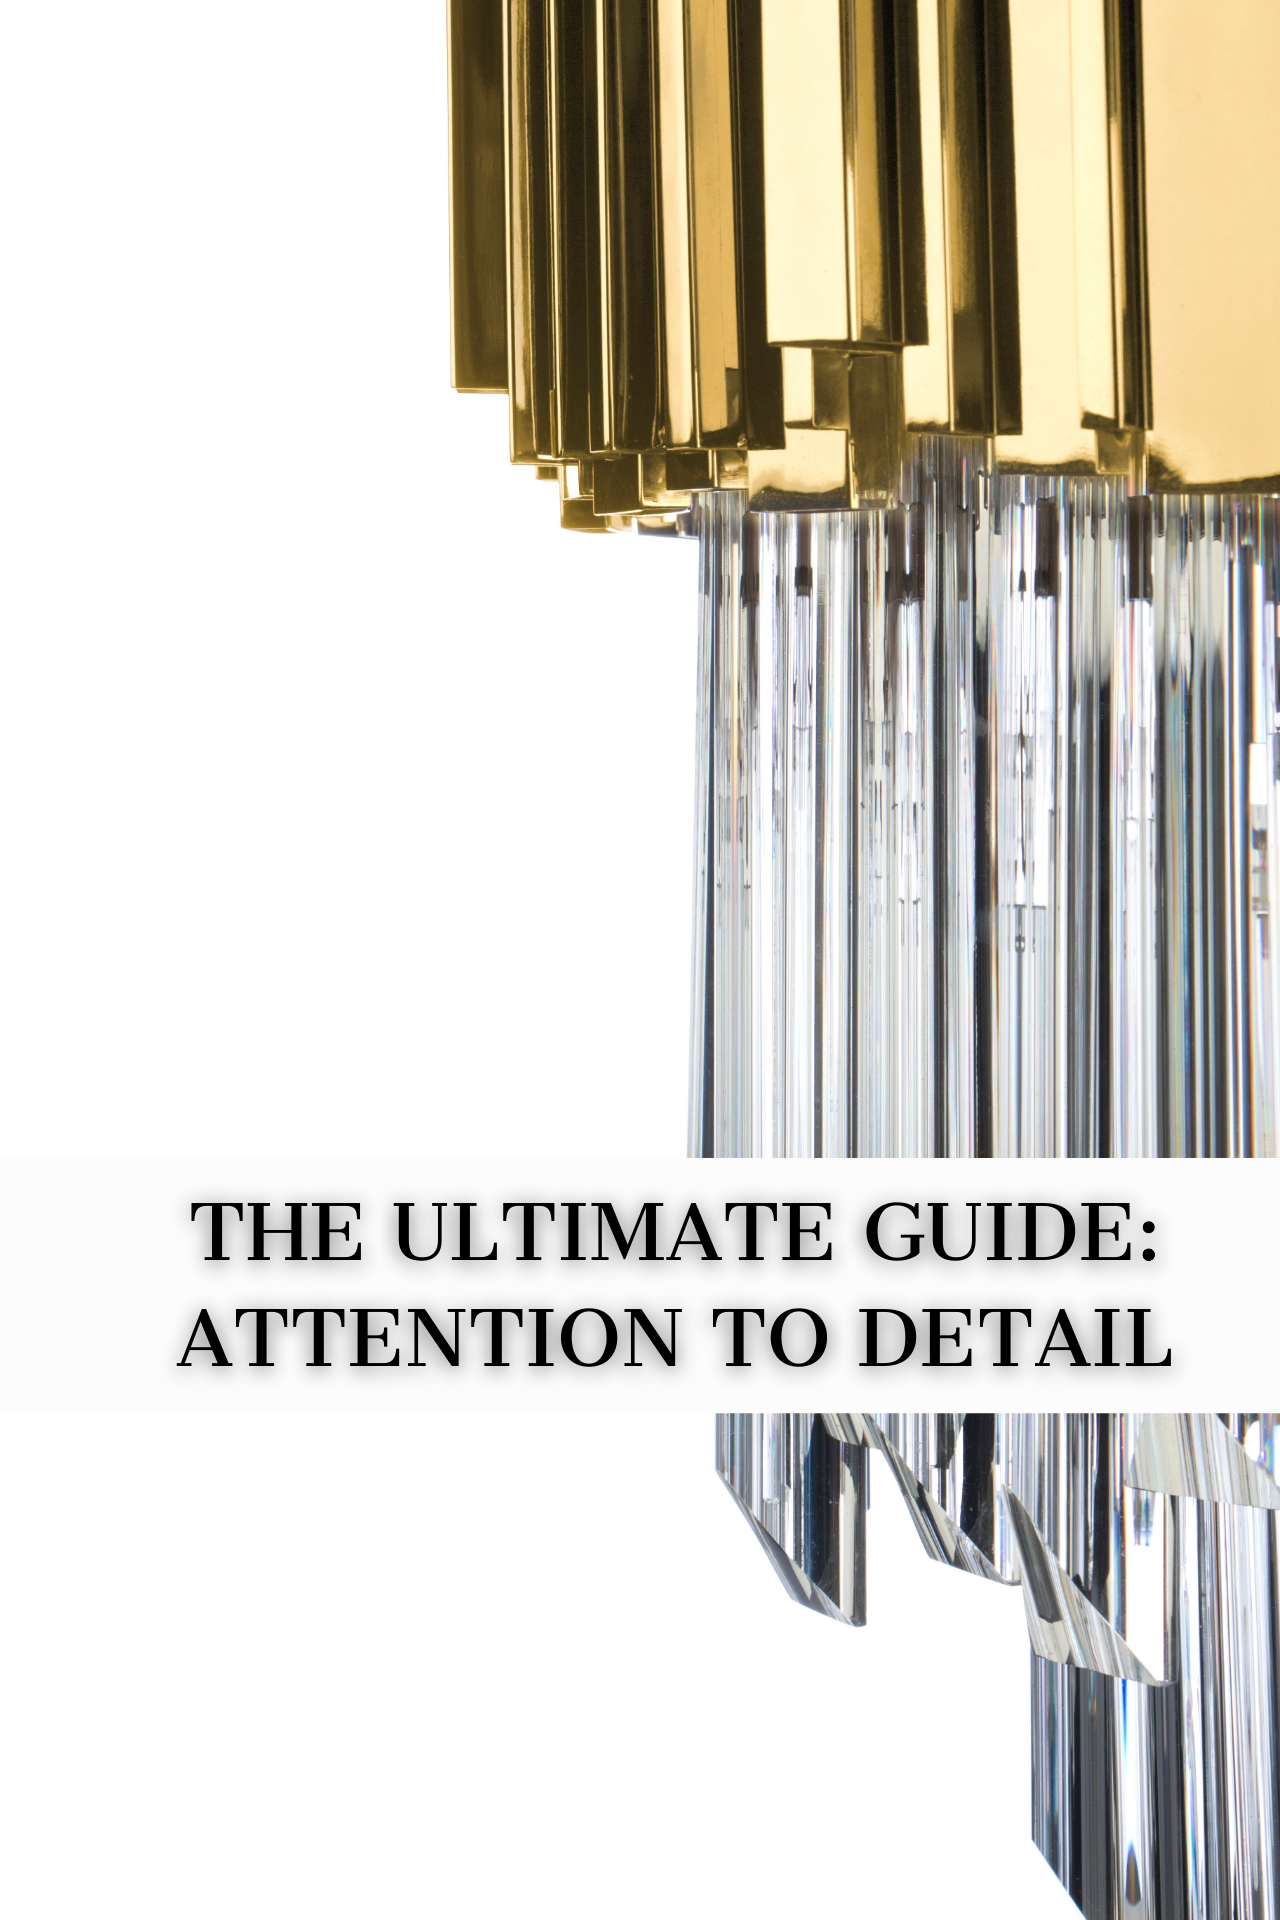 The Ultimate Guide to Craftsmanship - the attention to details